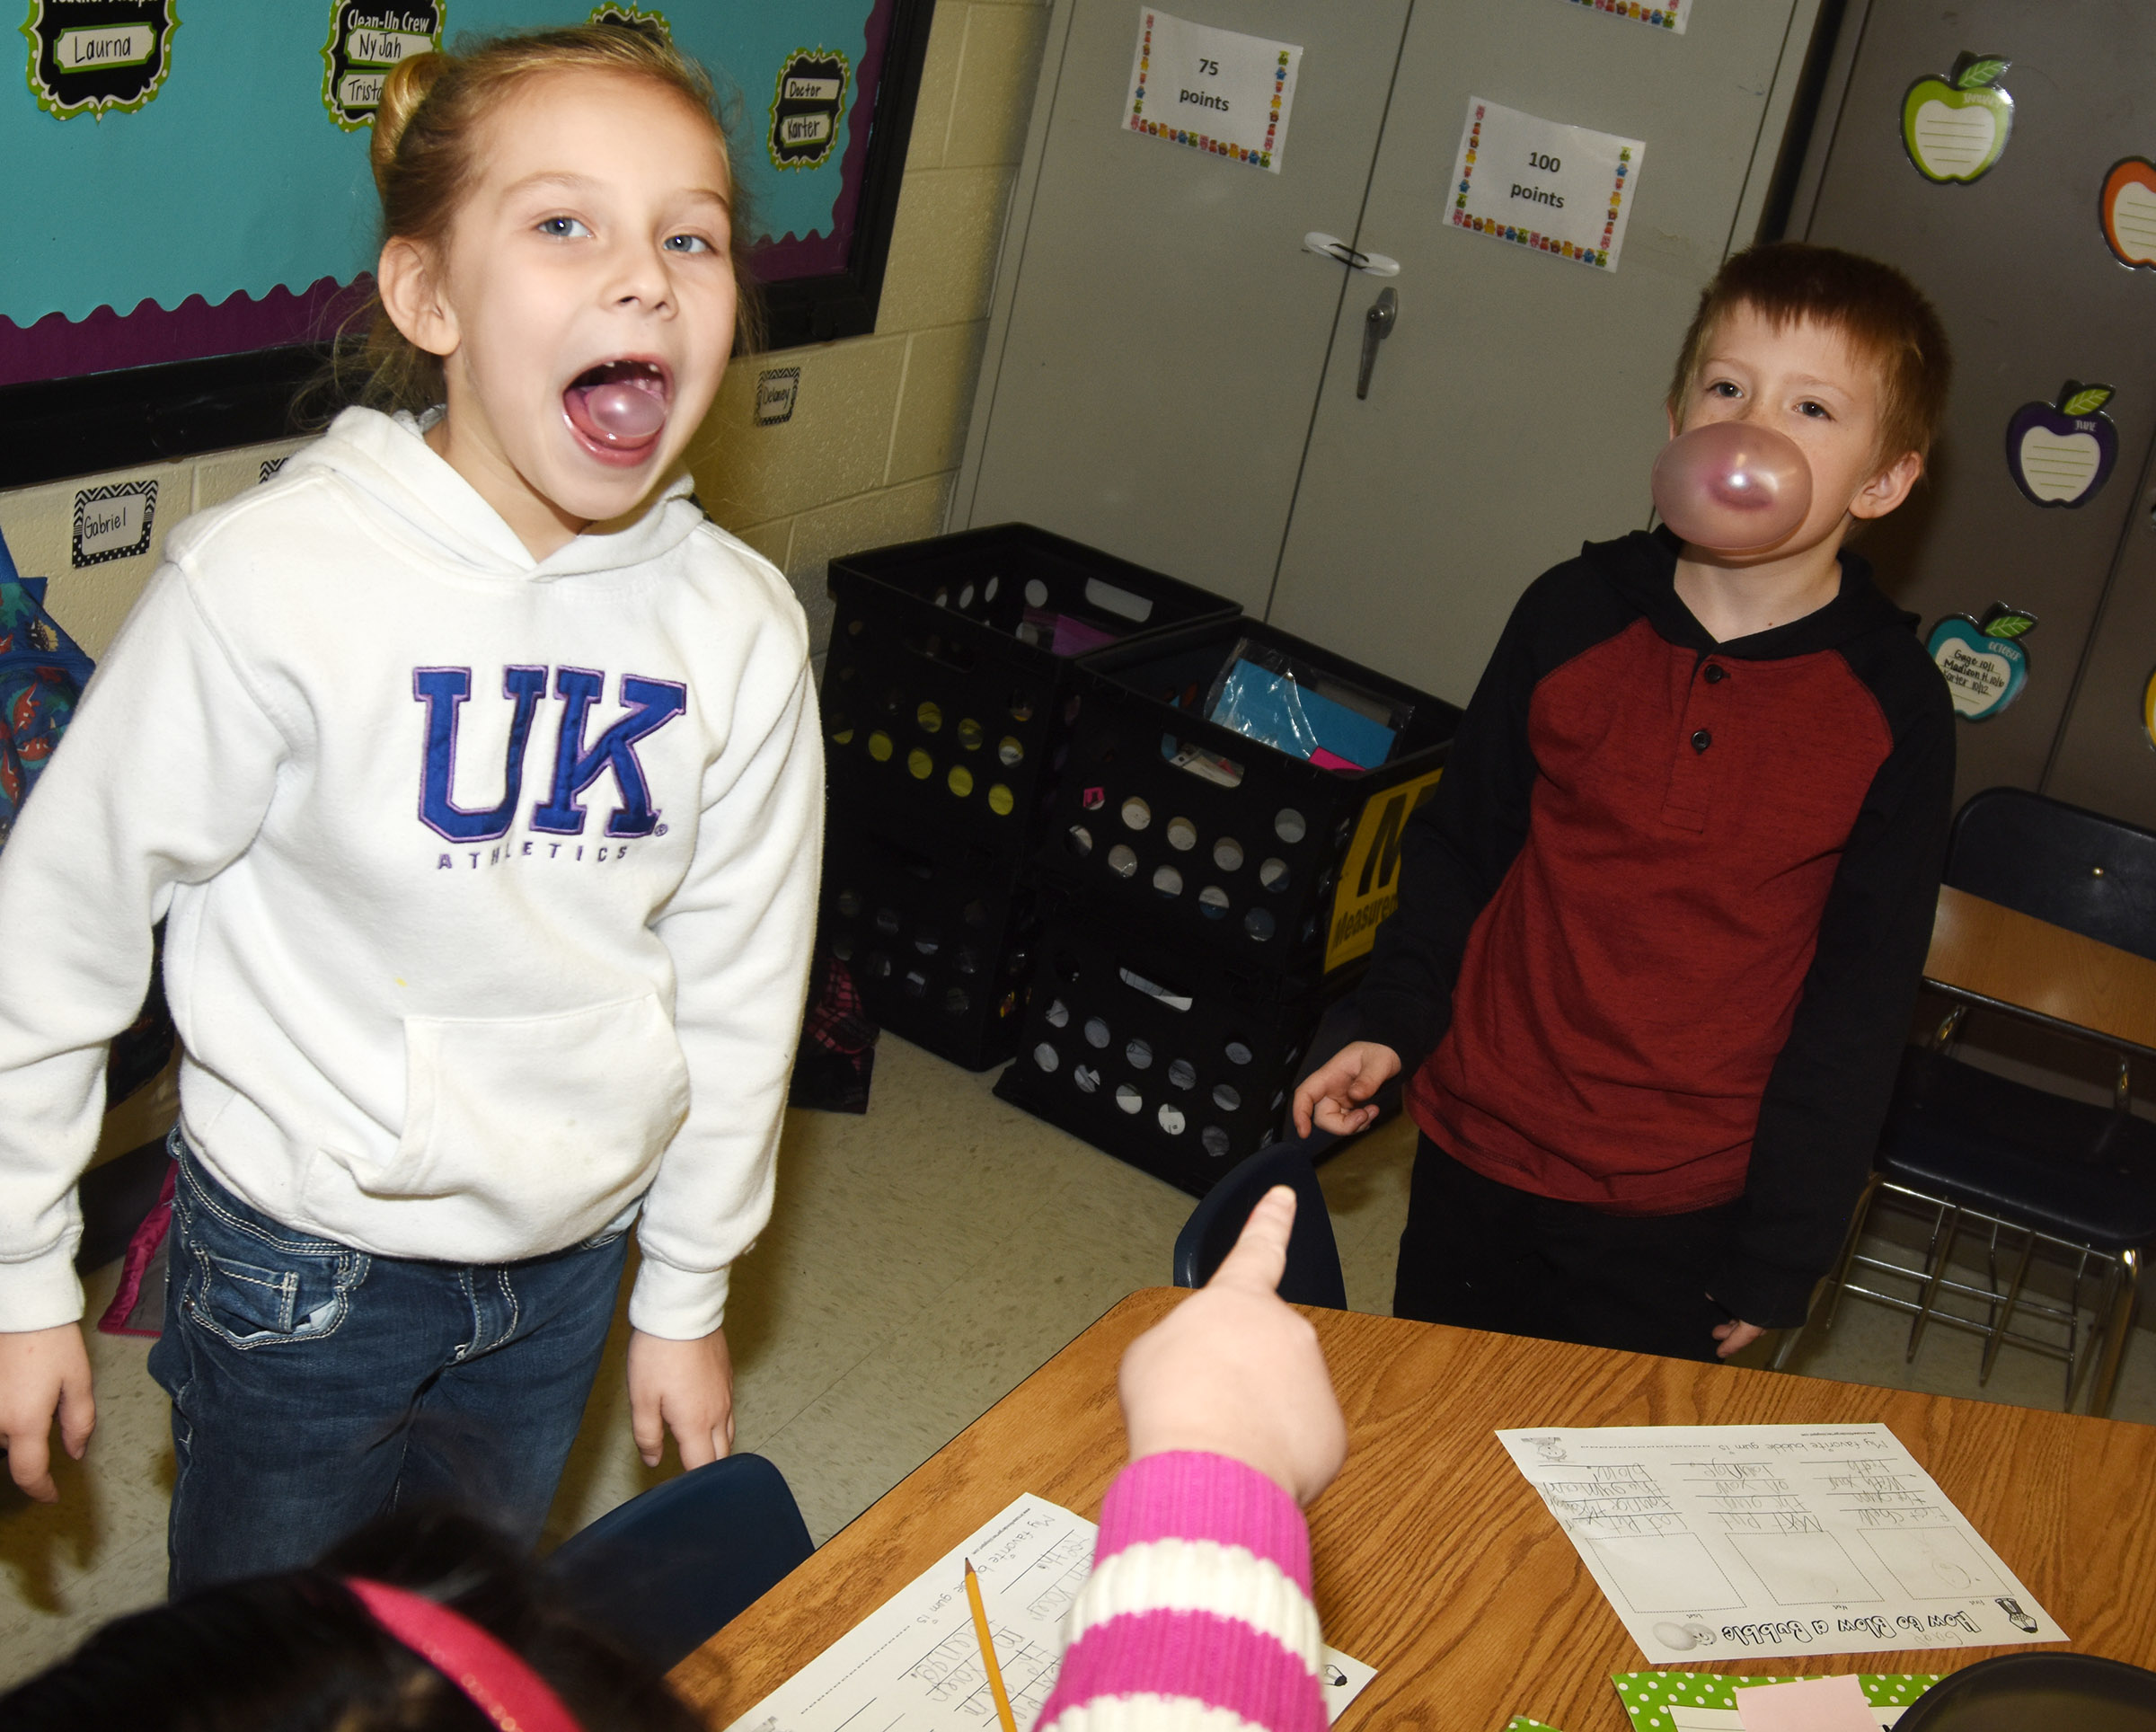 CES first-grader Kira Dotson laughs as classmate Gage Henderson blows a big bubble.